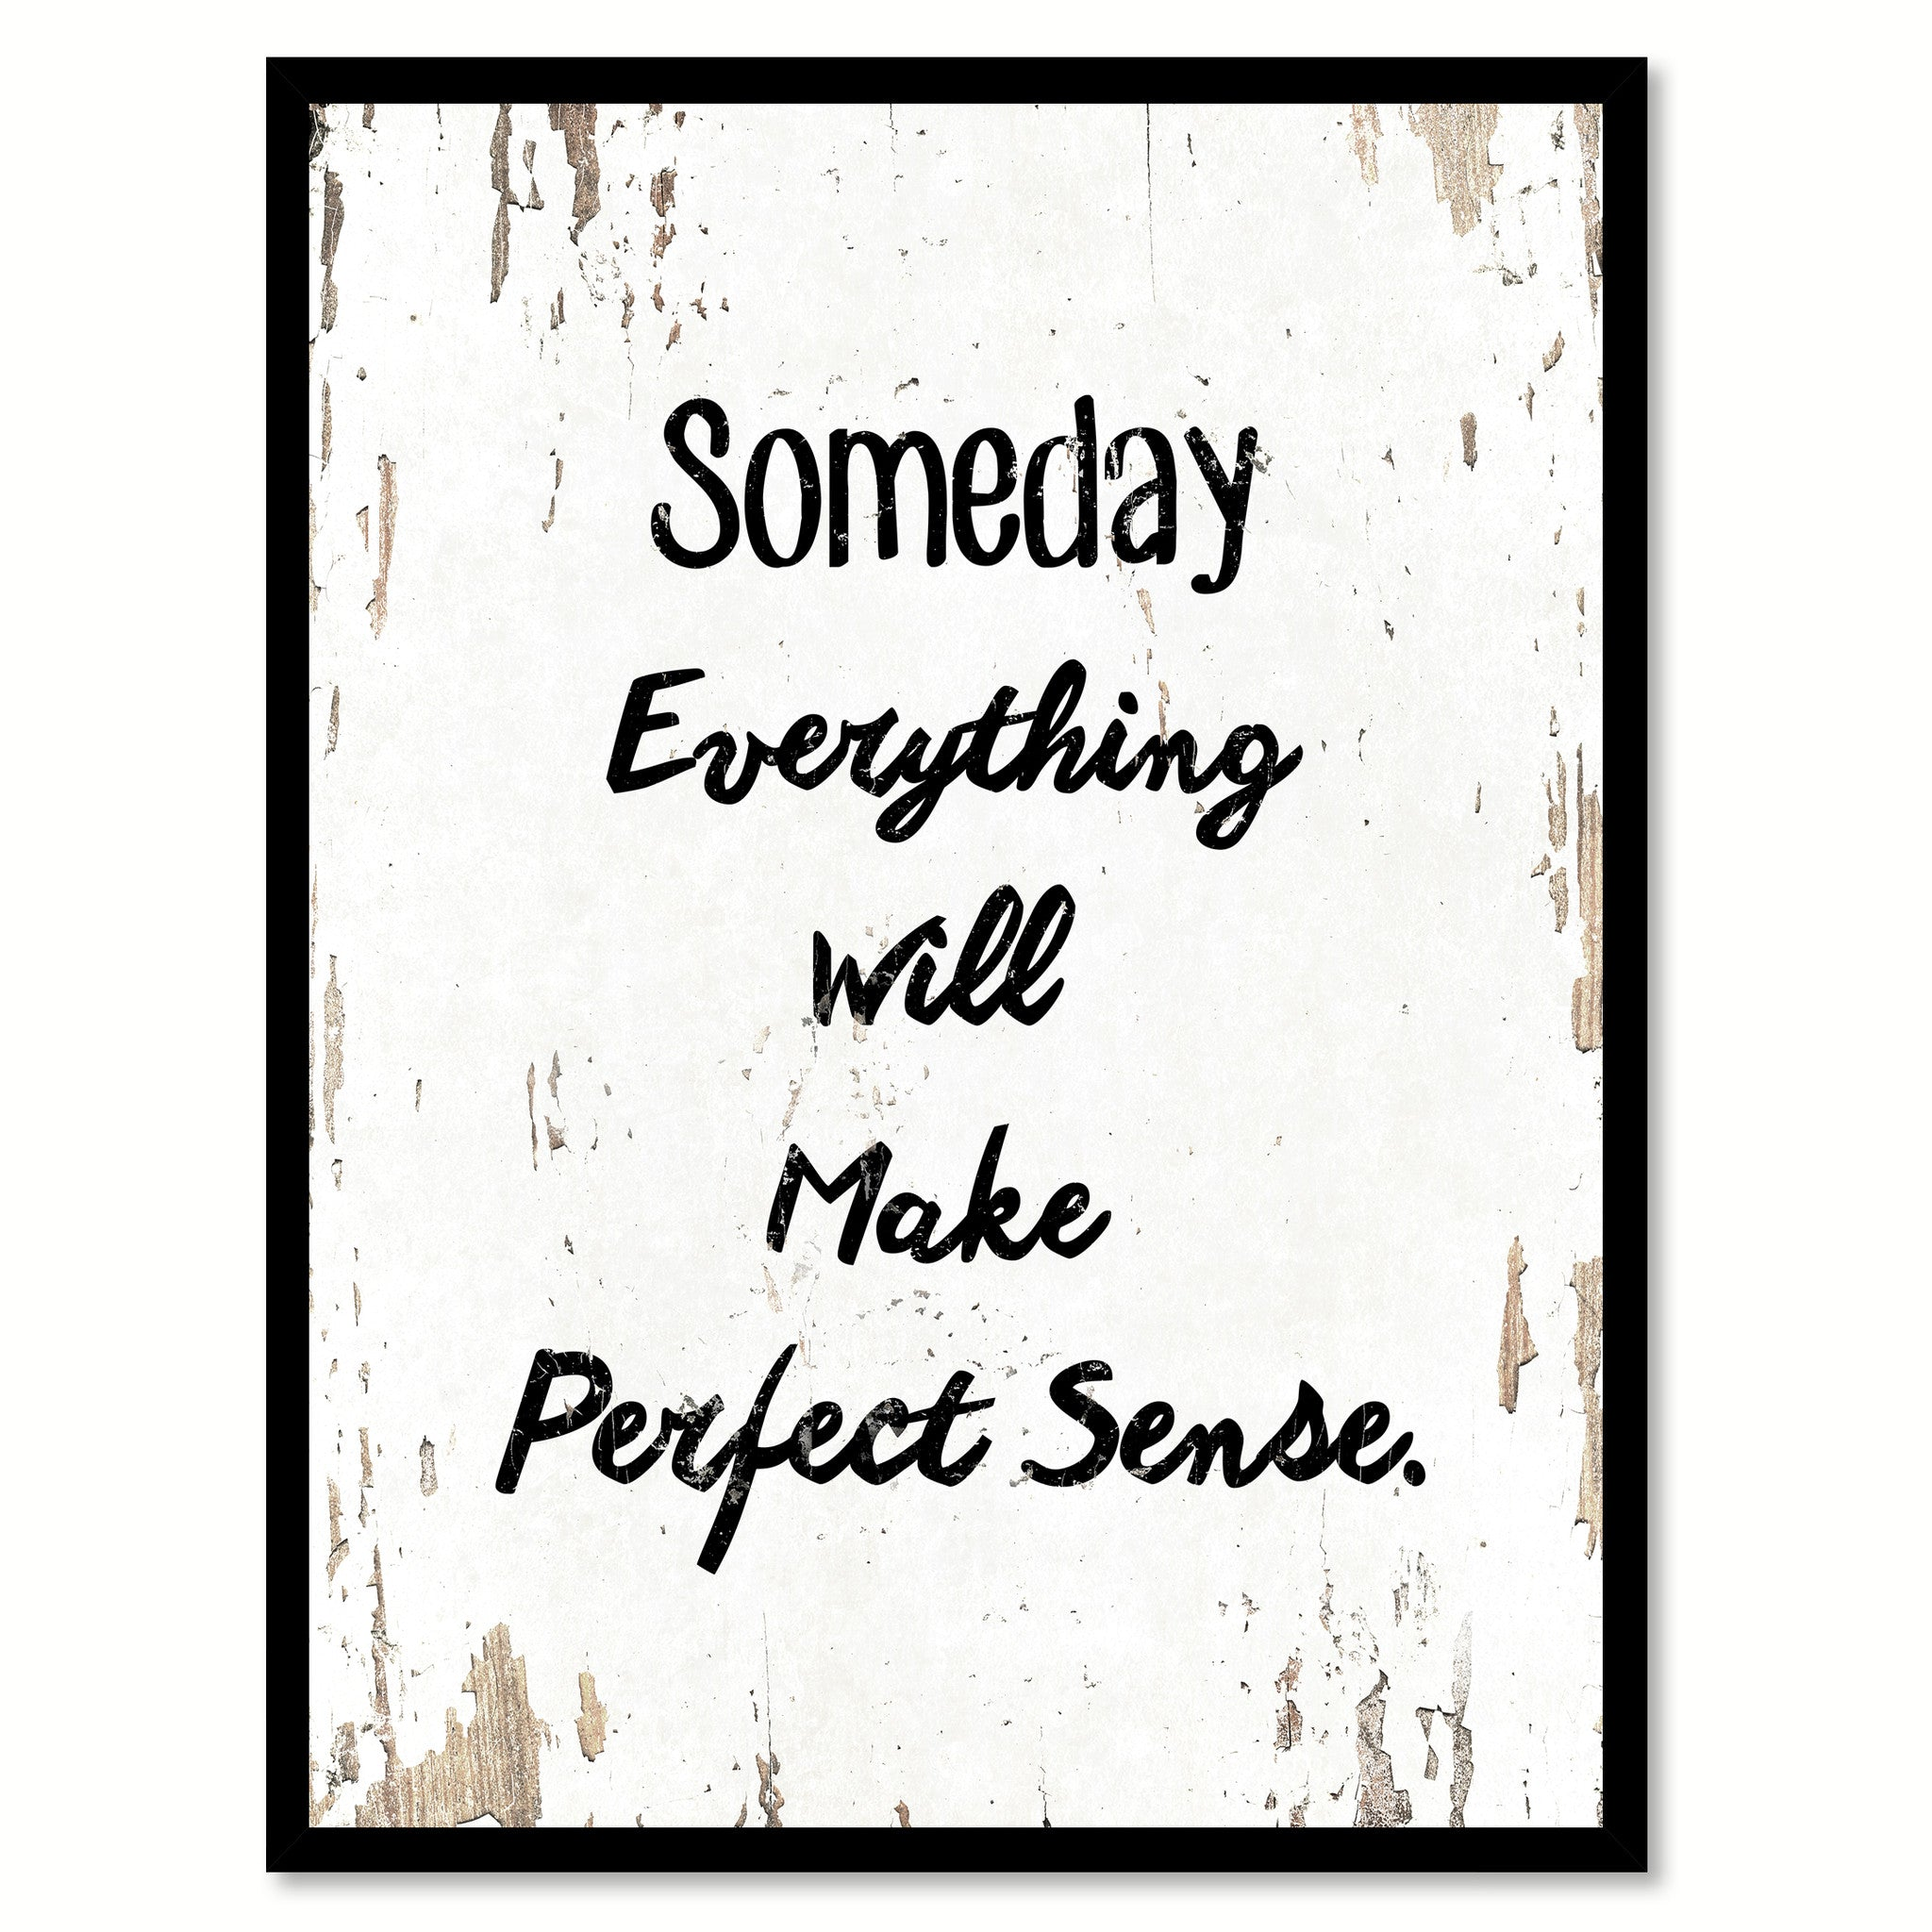 inspirational frames for office. Someday Everything Will Make Perfect Sense Quote Saying Gift Ideas Home Decor Wall Art 111598 Inspirational Frames For Office C